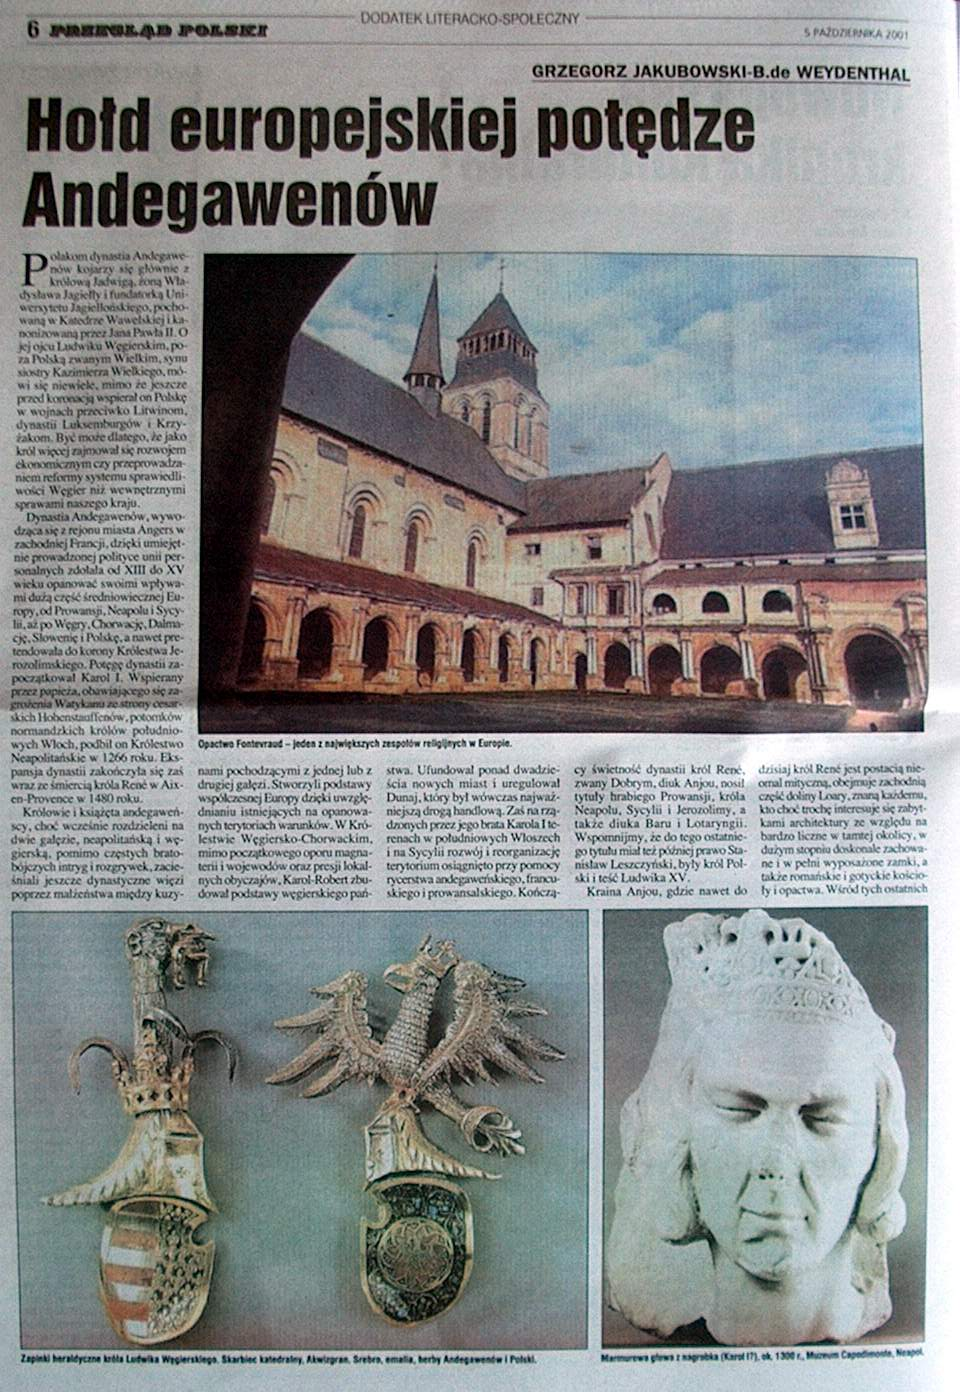 GJ ARTICLES : The Anjou Dynasty in the Fontevraud Abbey